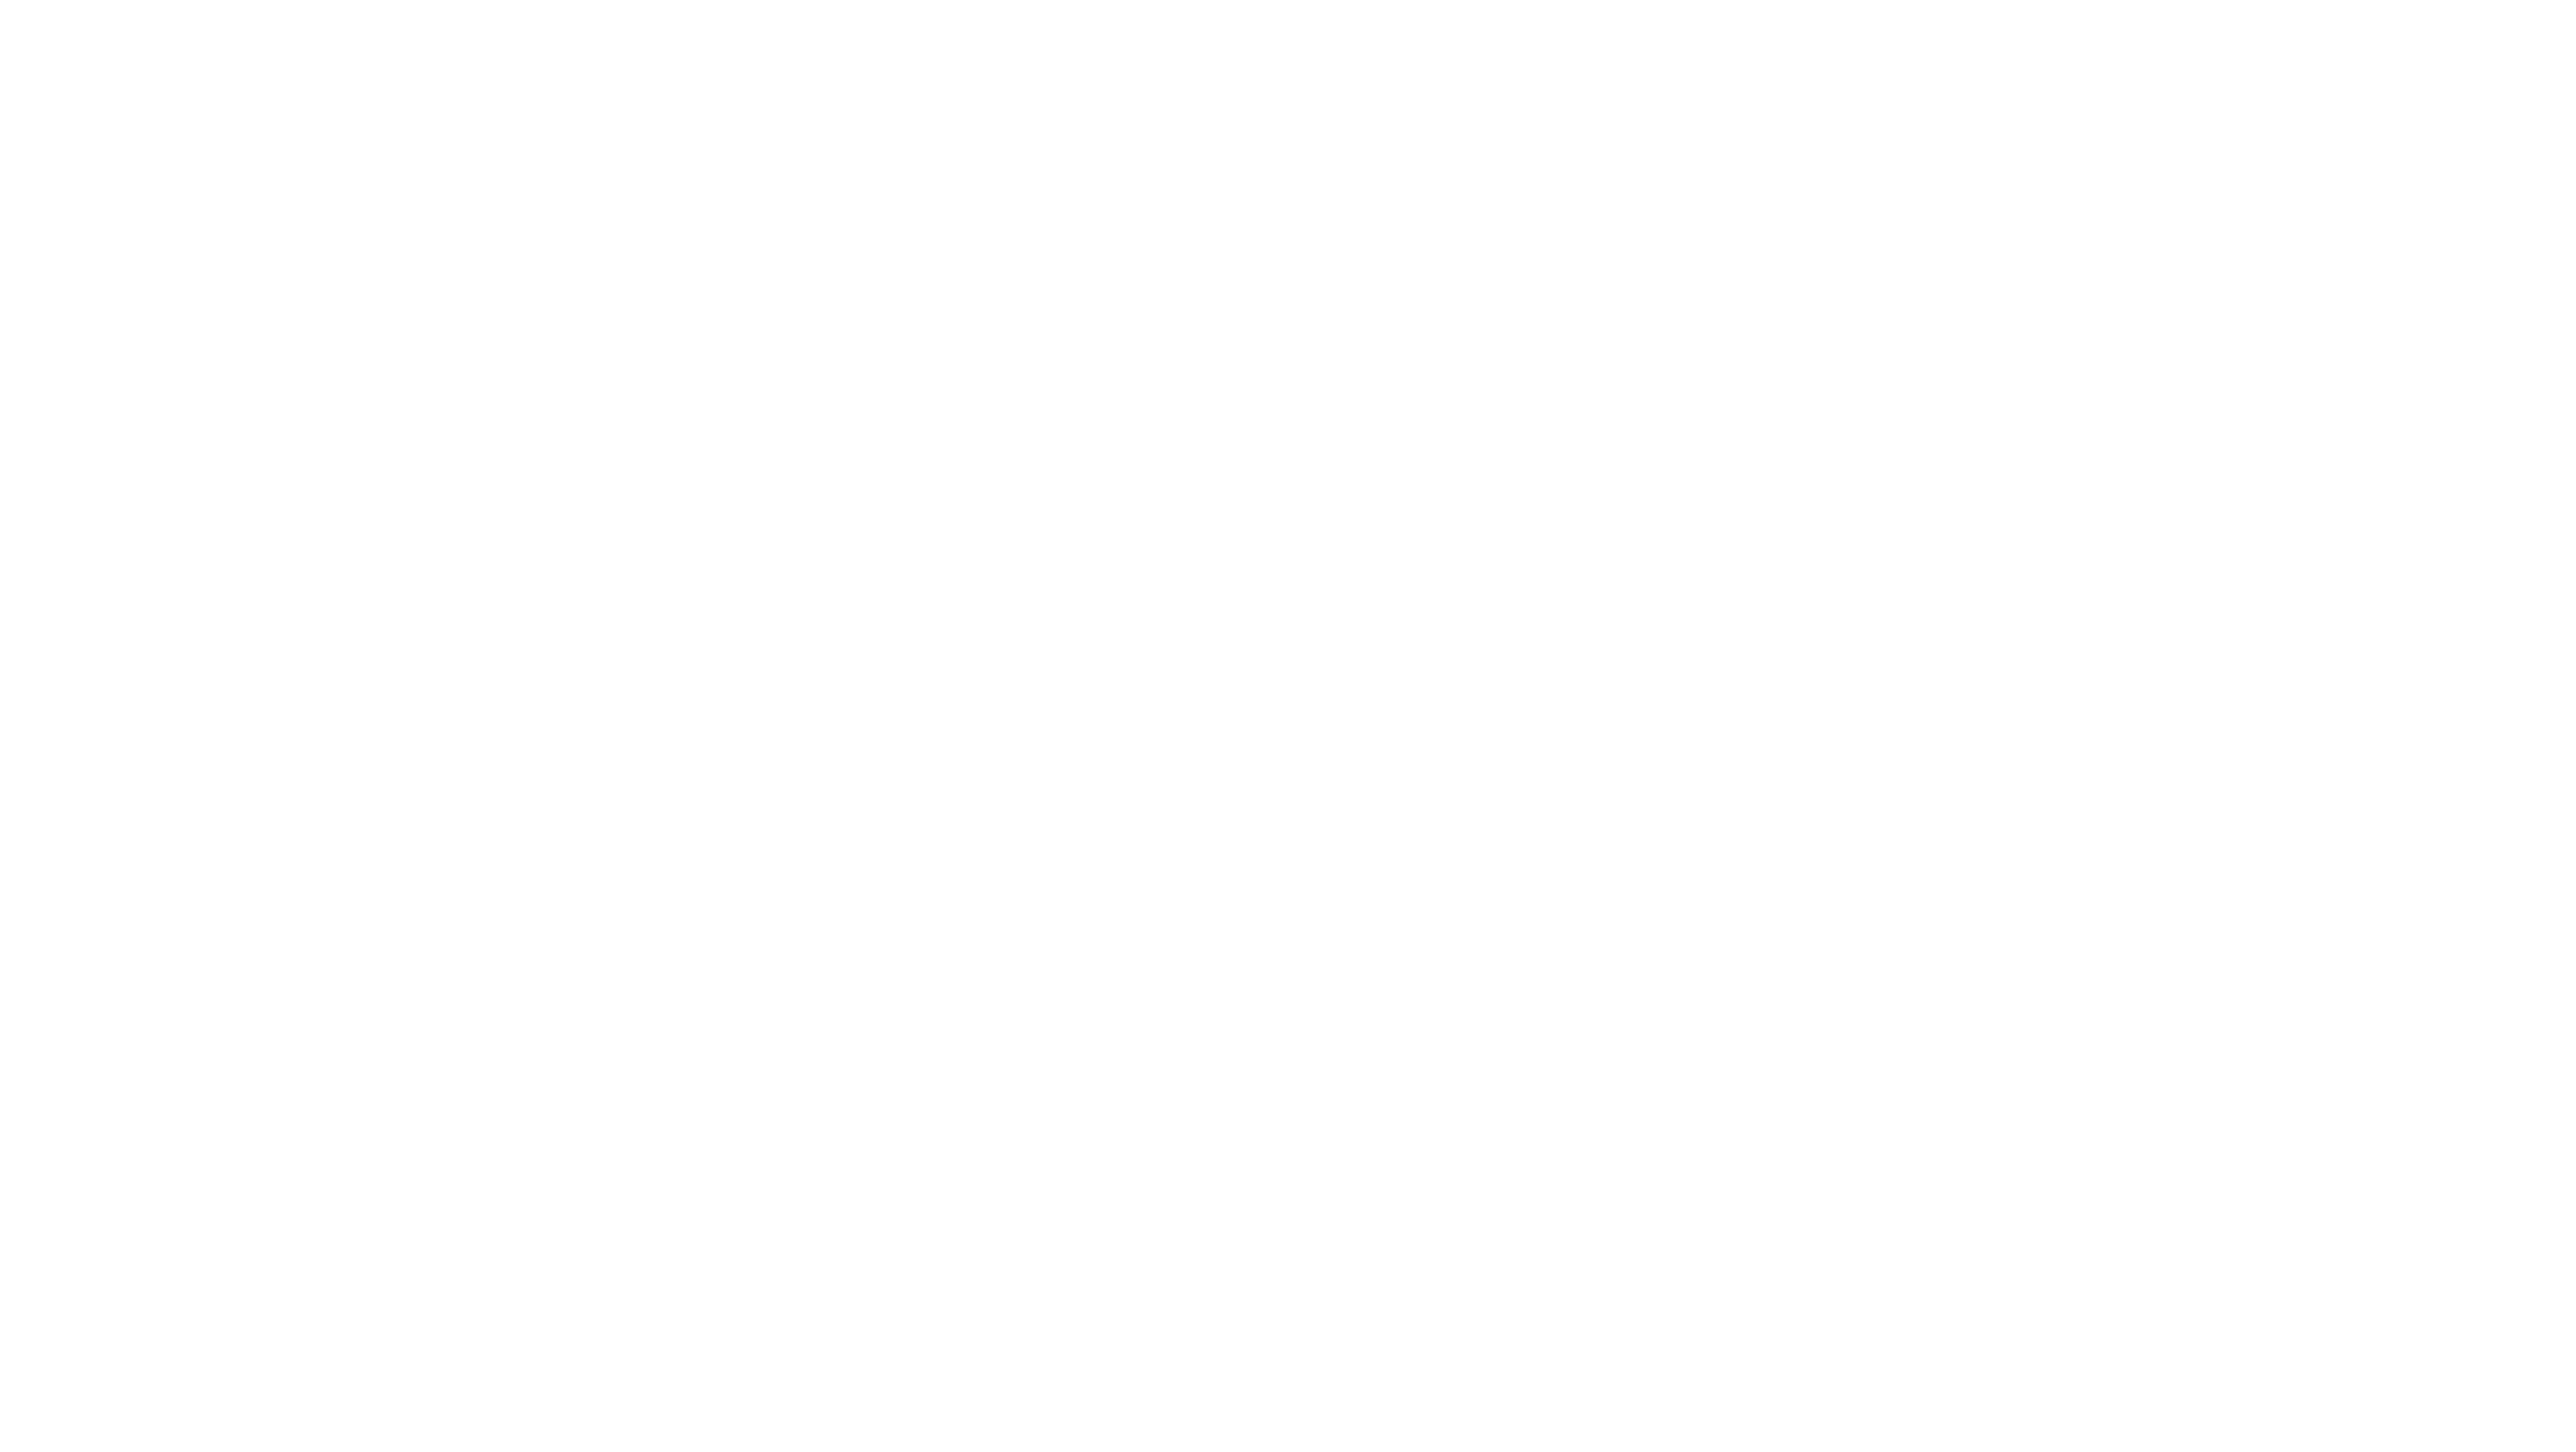 The Learning Years